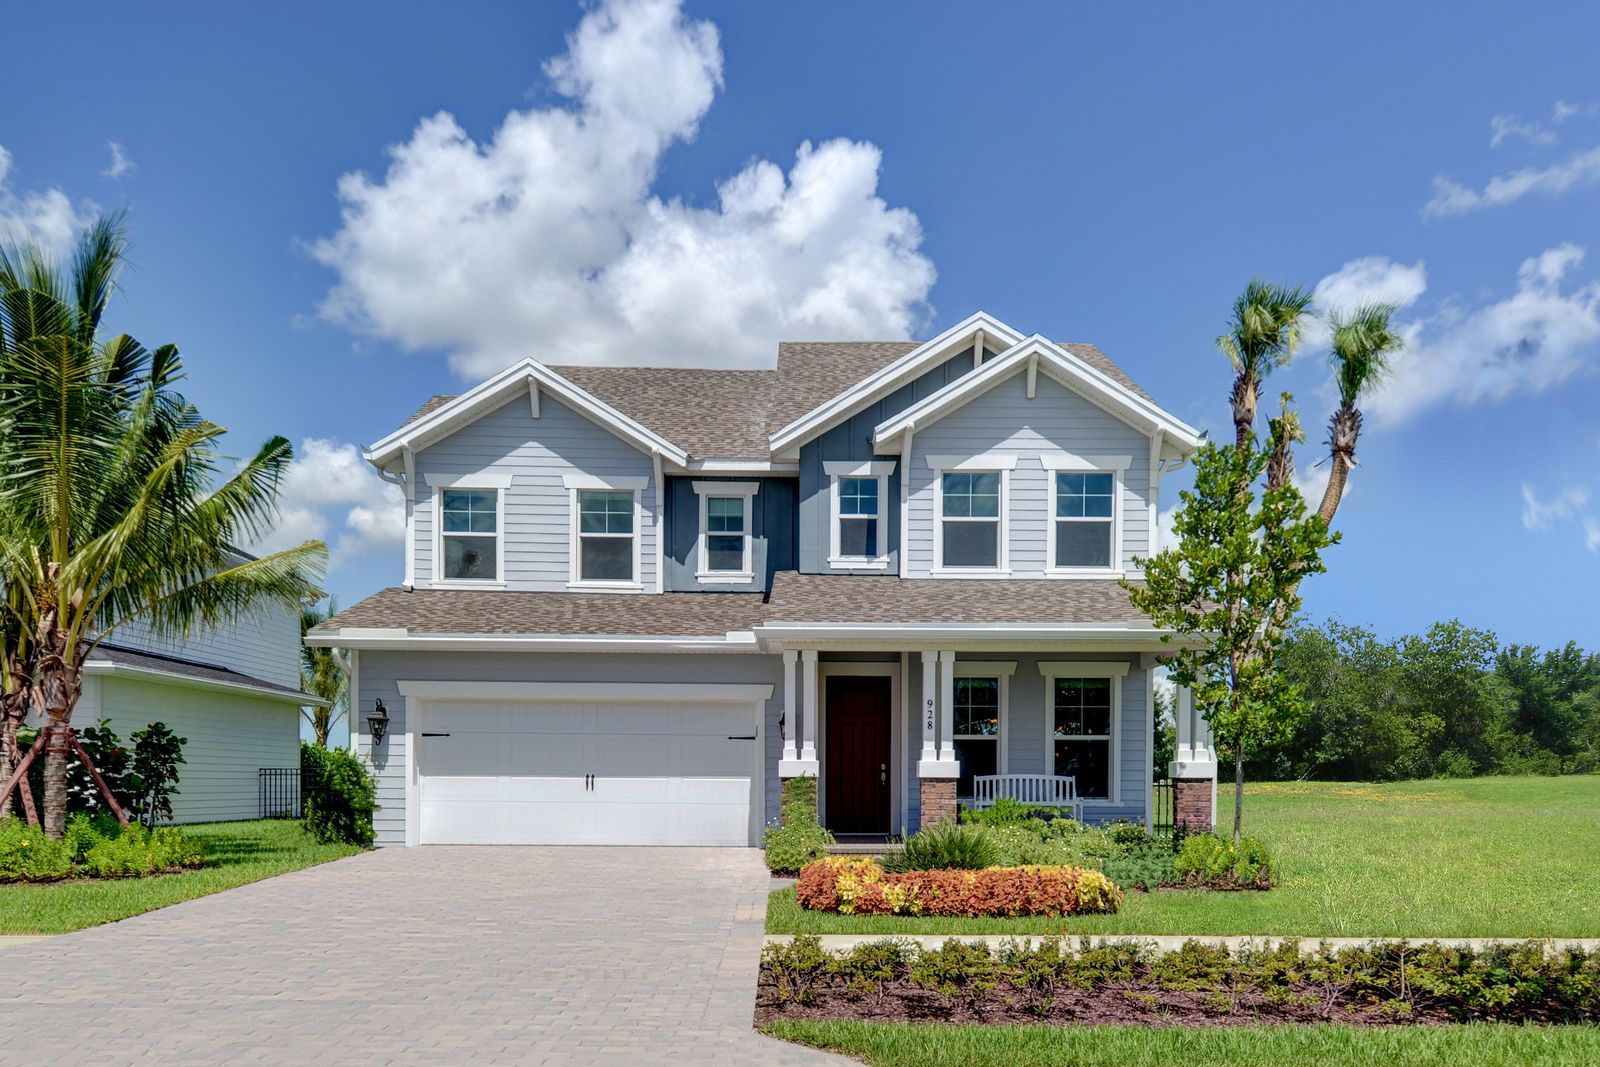 Single Family for Sale at Arden Artisan Collection - Corin 19425 Southern Blvd Loxahatchee, Florida 33470 United States